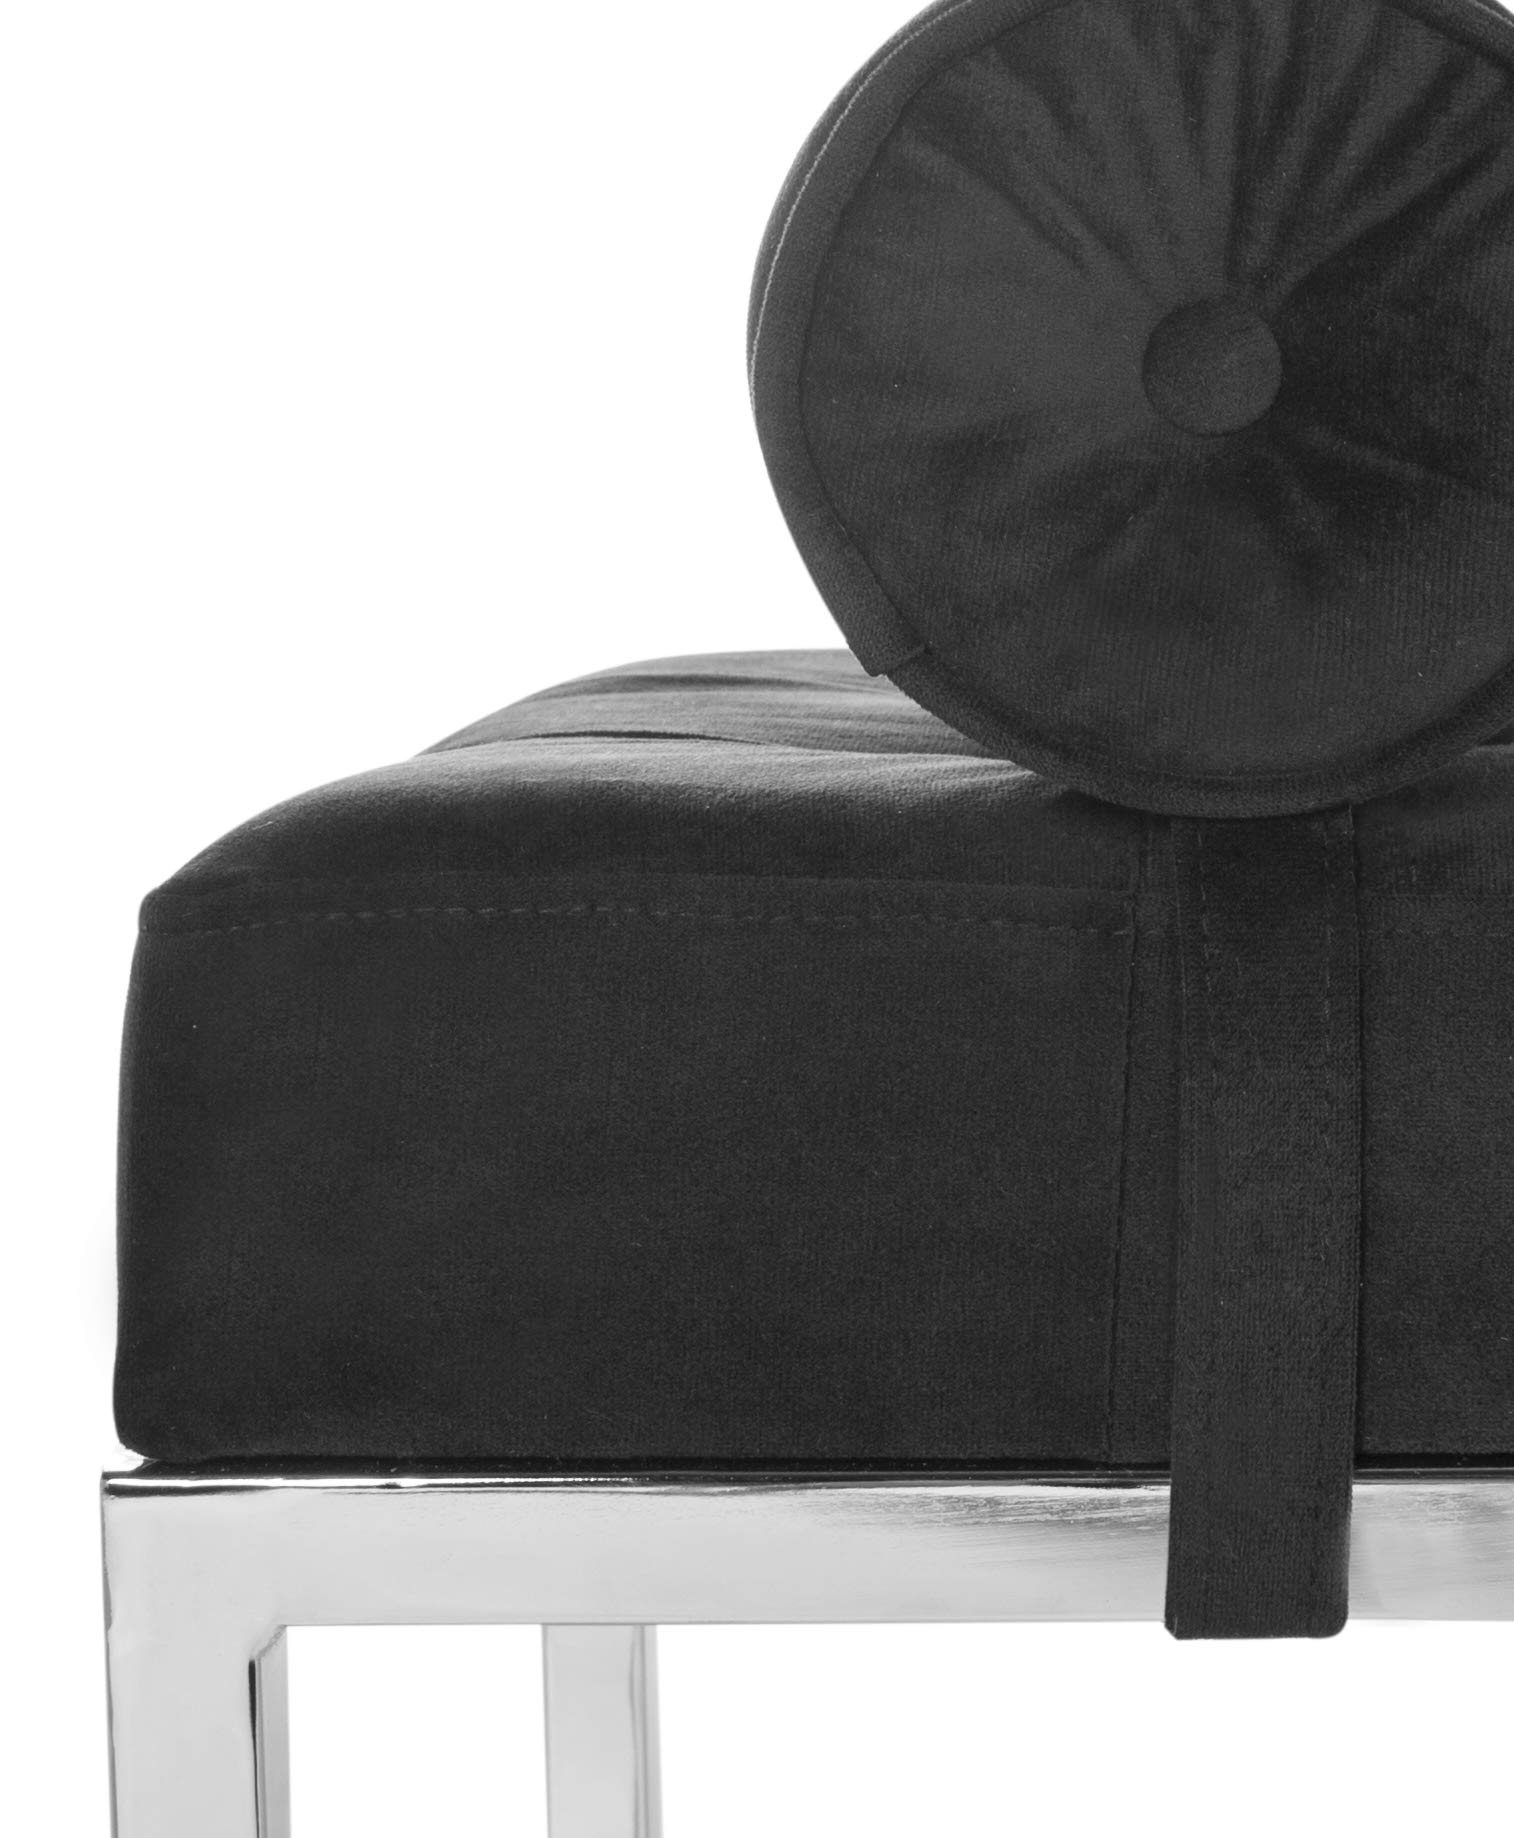 Safavieh FOX6240B Home Collection Xavier Tufted Bench, Black by Safavieh (Image #6)